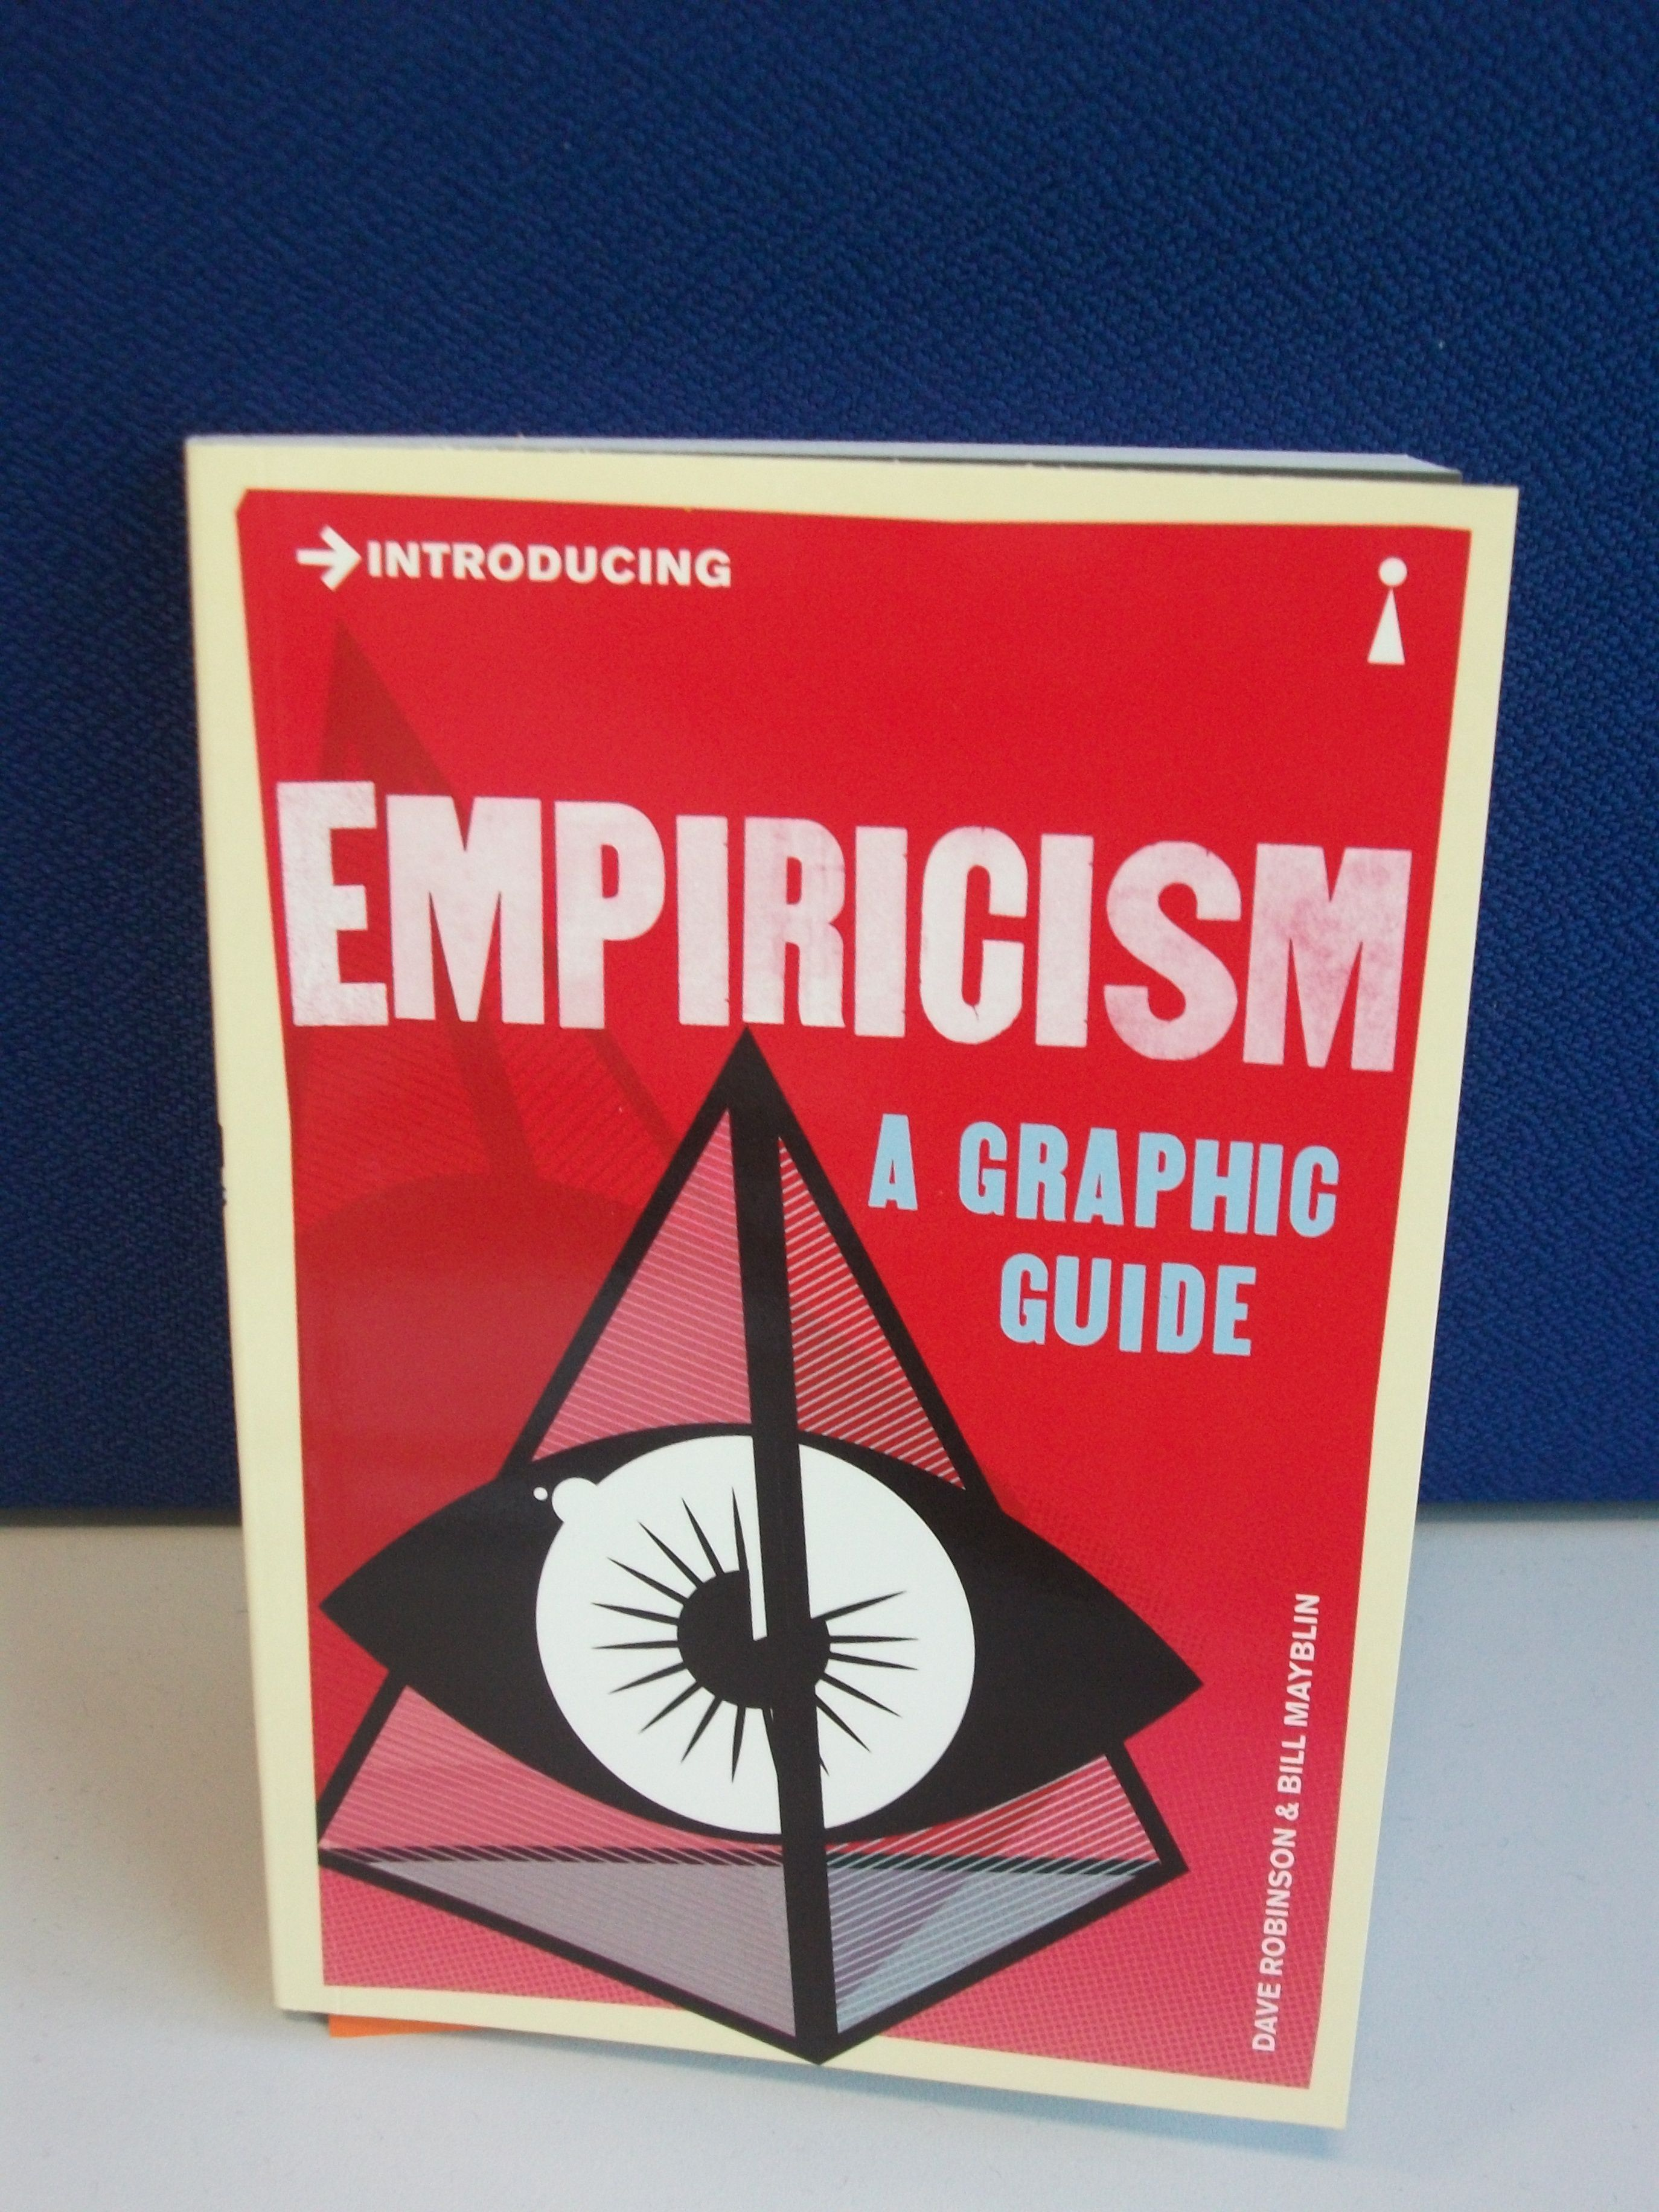 Introducing Empiricism By Dave Robinson 2013 Philosophy Book Cover Notions